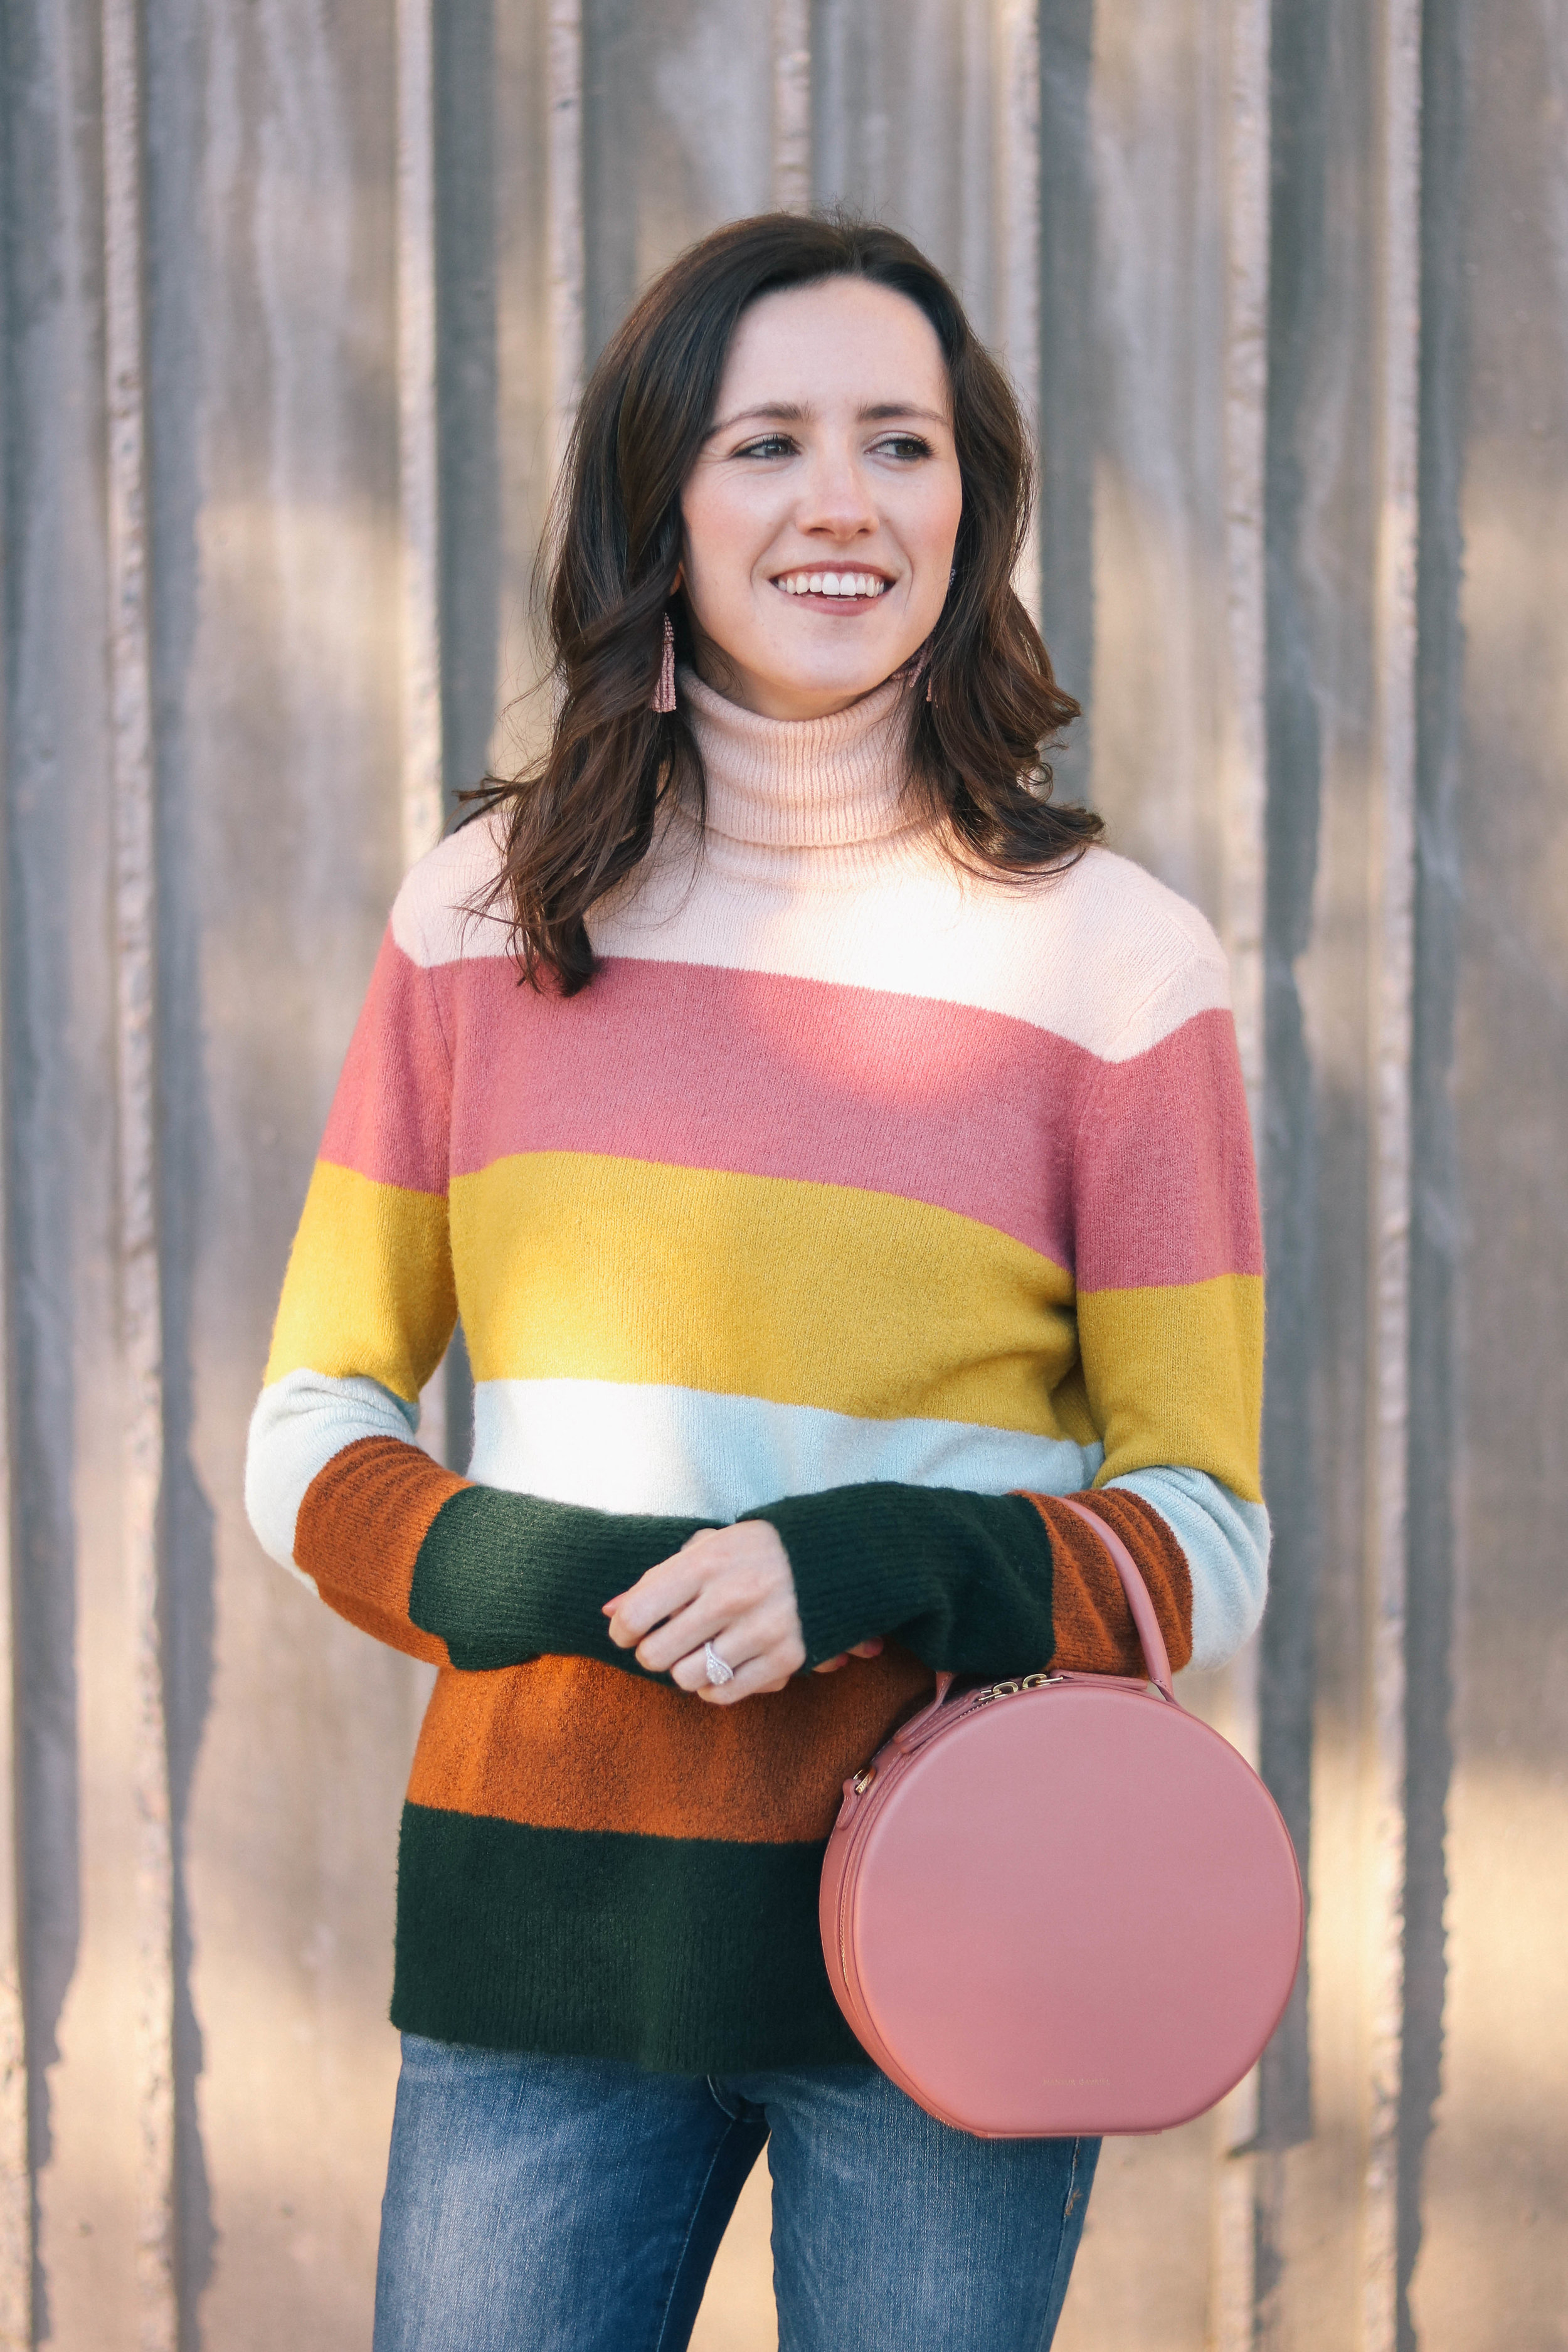 bb-striped-sweater-008 (1 of 1).jpg